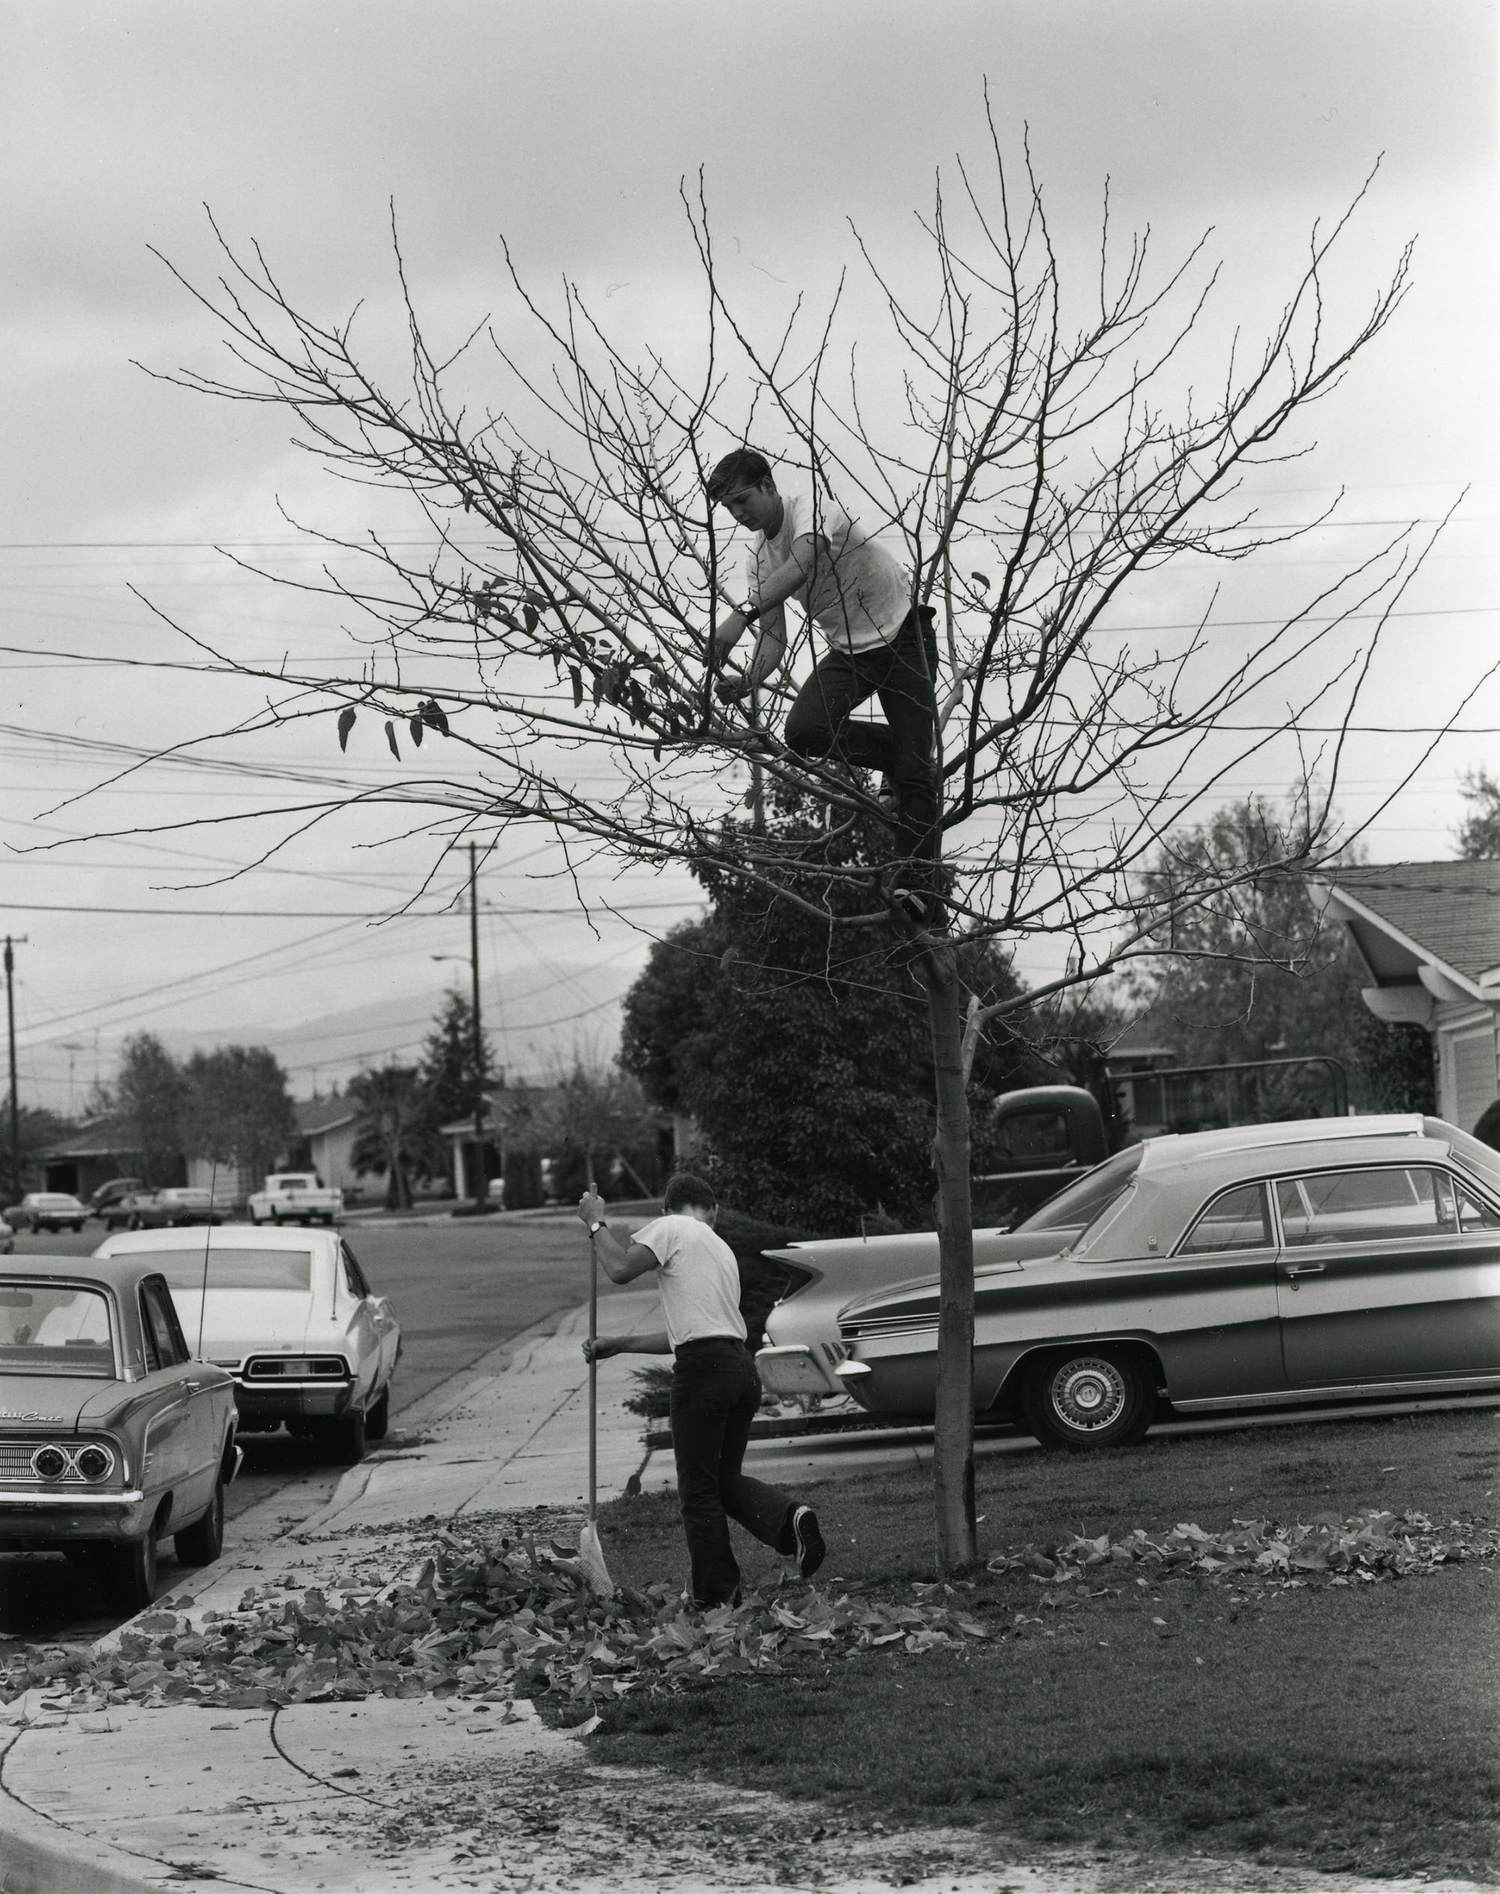 "Bill Owens: His Blue Suburban Skies - Winter, 2019 (Text)One photograph in Suburbia, Owens's now classic documentation of American bedroom communities in the early 1970s, a young man climbs up a tree, plucking the few remaining dead leaves. ""My dad thinks it's a good idea to take all the leaves off the tree and rake up the yard. I think he's crazy,"" the caption reads. He is crazy. It's an absurd task and a fitting metaphor for the idealized American dream the family is striving to attain. ""This book is about my friends and the world I live in,"" writes Owens, in the introduction to Suburbia. The world he photographs is strange. It's mundane, caught up in everyday routine, in the pleasures of material and social wealth, and in the vague promise of a nebulous guaranteed happiness. But the photographs are not judgemental, they are simply self-aware, conscious of the drama present, but also of things clearly absent. And while not unique to the suburbs, the setting isolates and exposes certain contradictions about American life, especially in the context of the social and political turmoil in the country at the time… [Read more]"